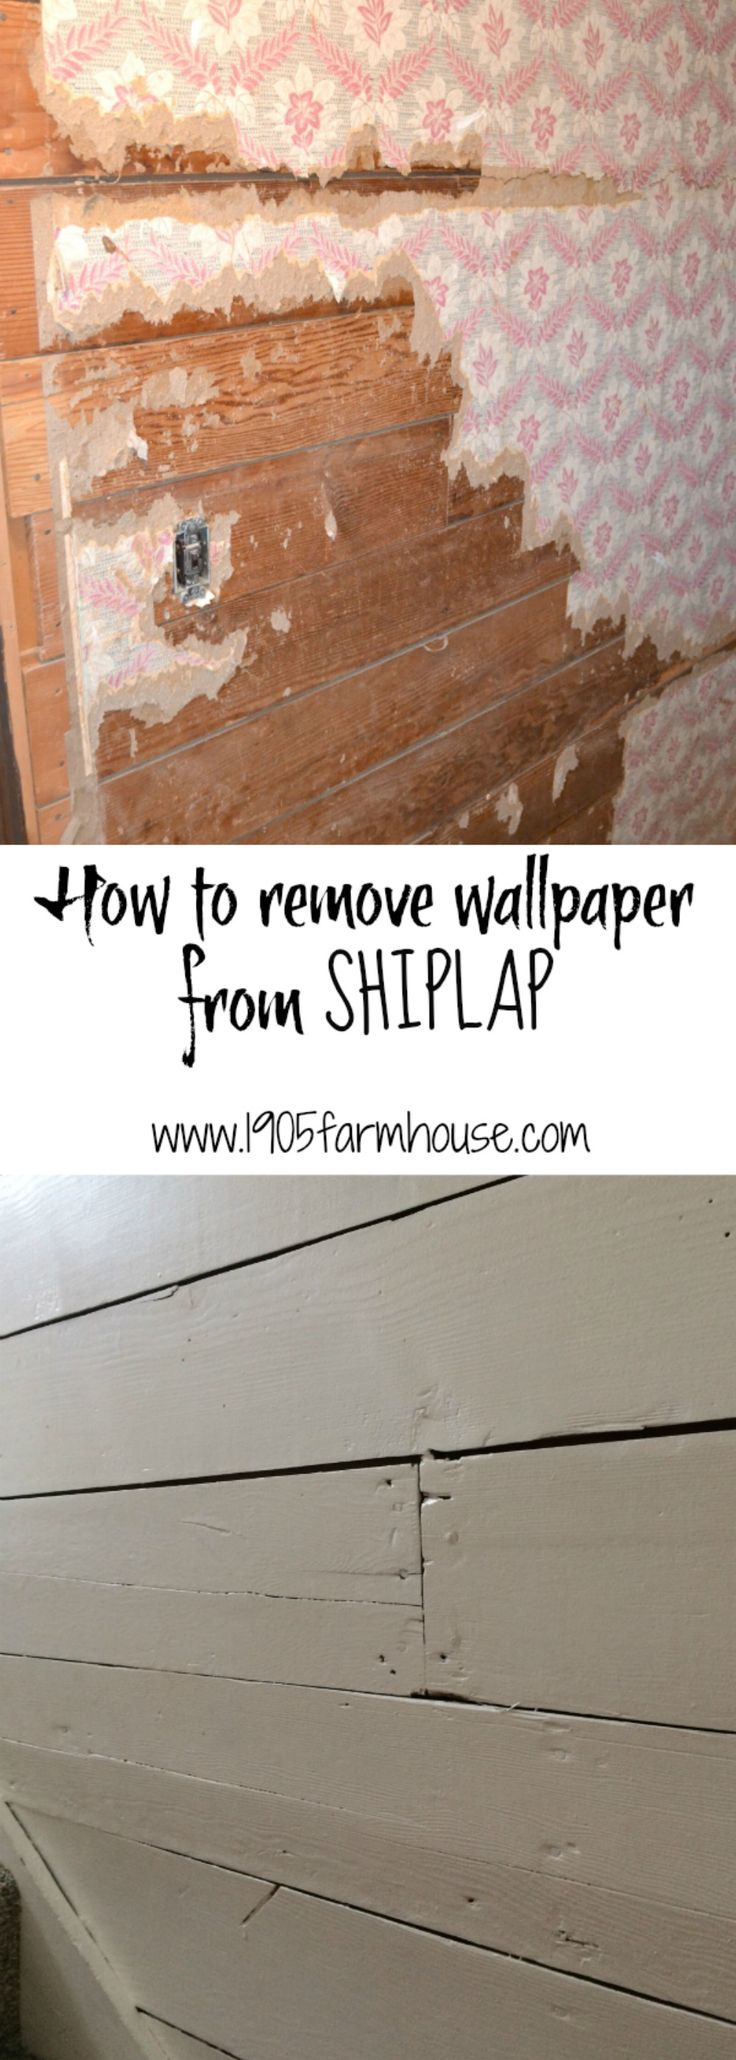 How to remove wallpaper paste from sheetrock - Best 25 Removing Old Wallpaper Ideas On Pinterest How To Remove Wallpaper Remove Wallpaper And Removing Wallpaper